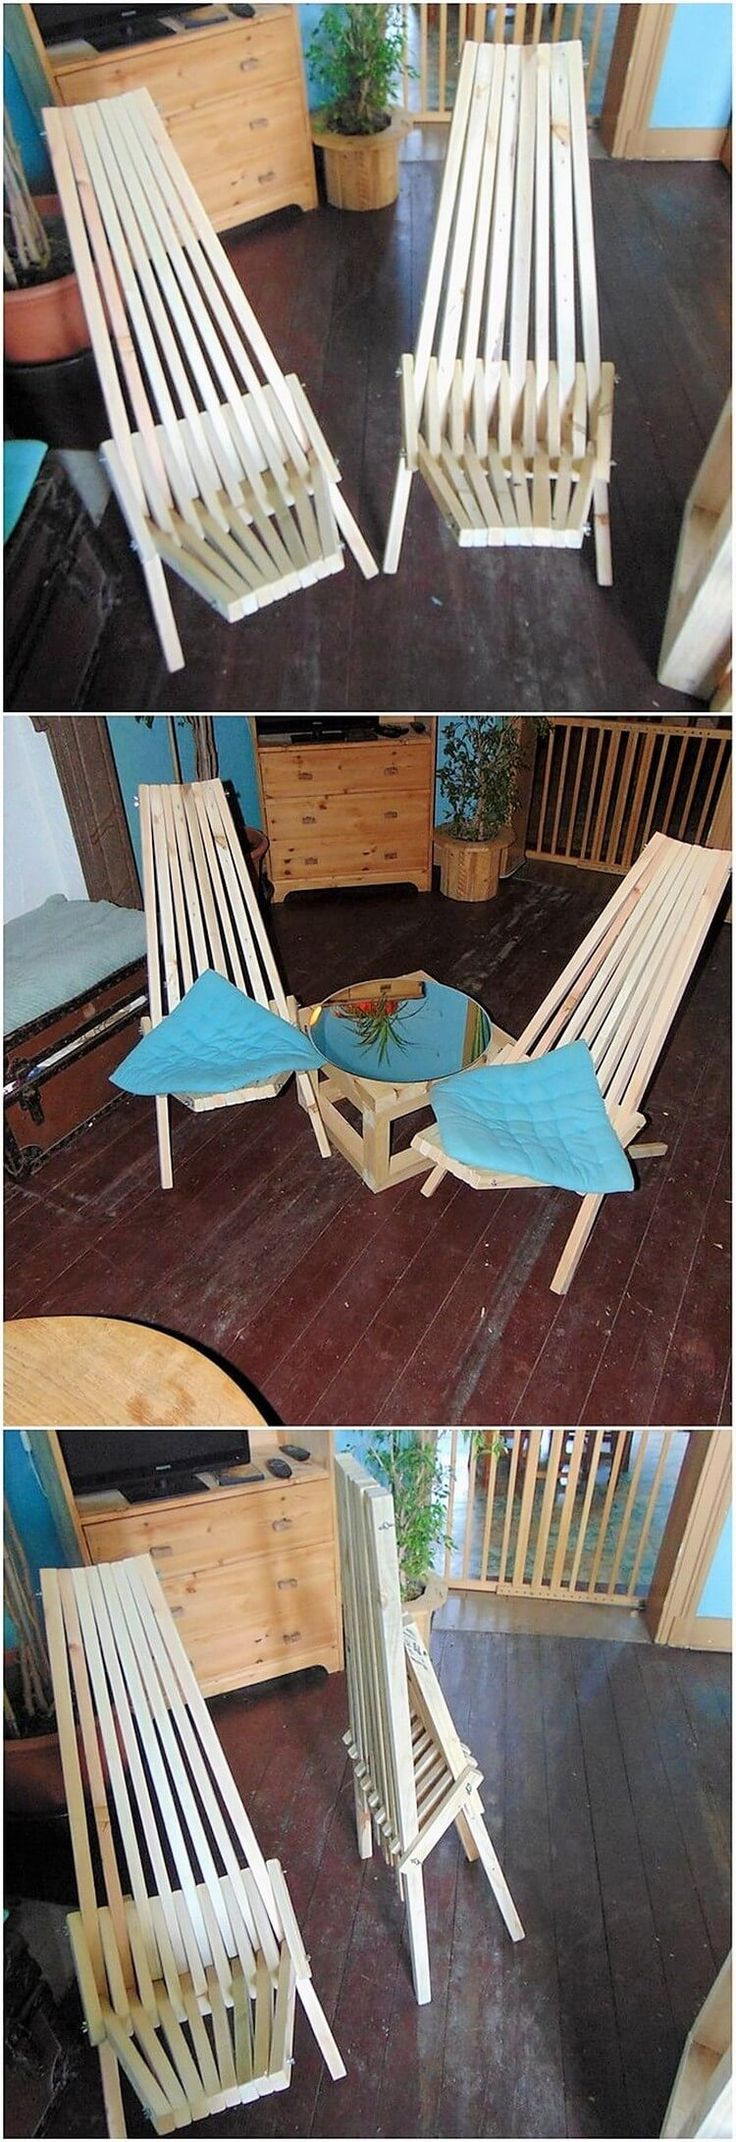 This is so innovative creation piece of the wood pallet where you will encounter the mesmerizing fold chair artwork design. It might fold to make it easy for you to take it any place you want to. As you would open the folding chair, you can adjust it to be used as the sun lounger piece.